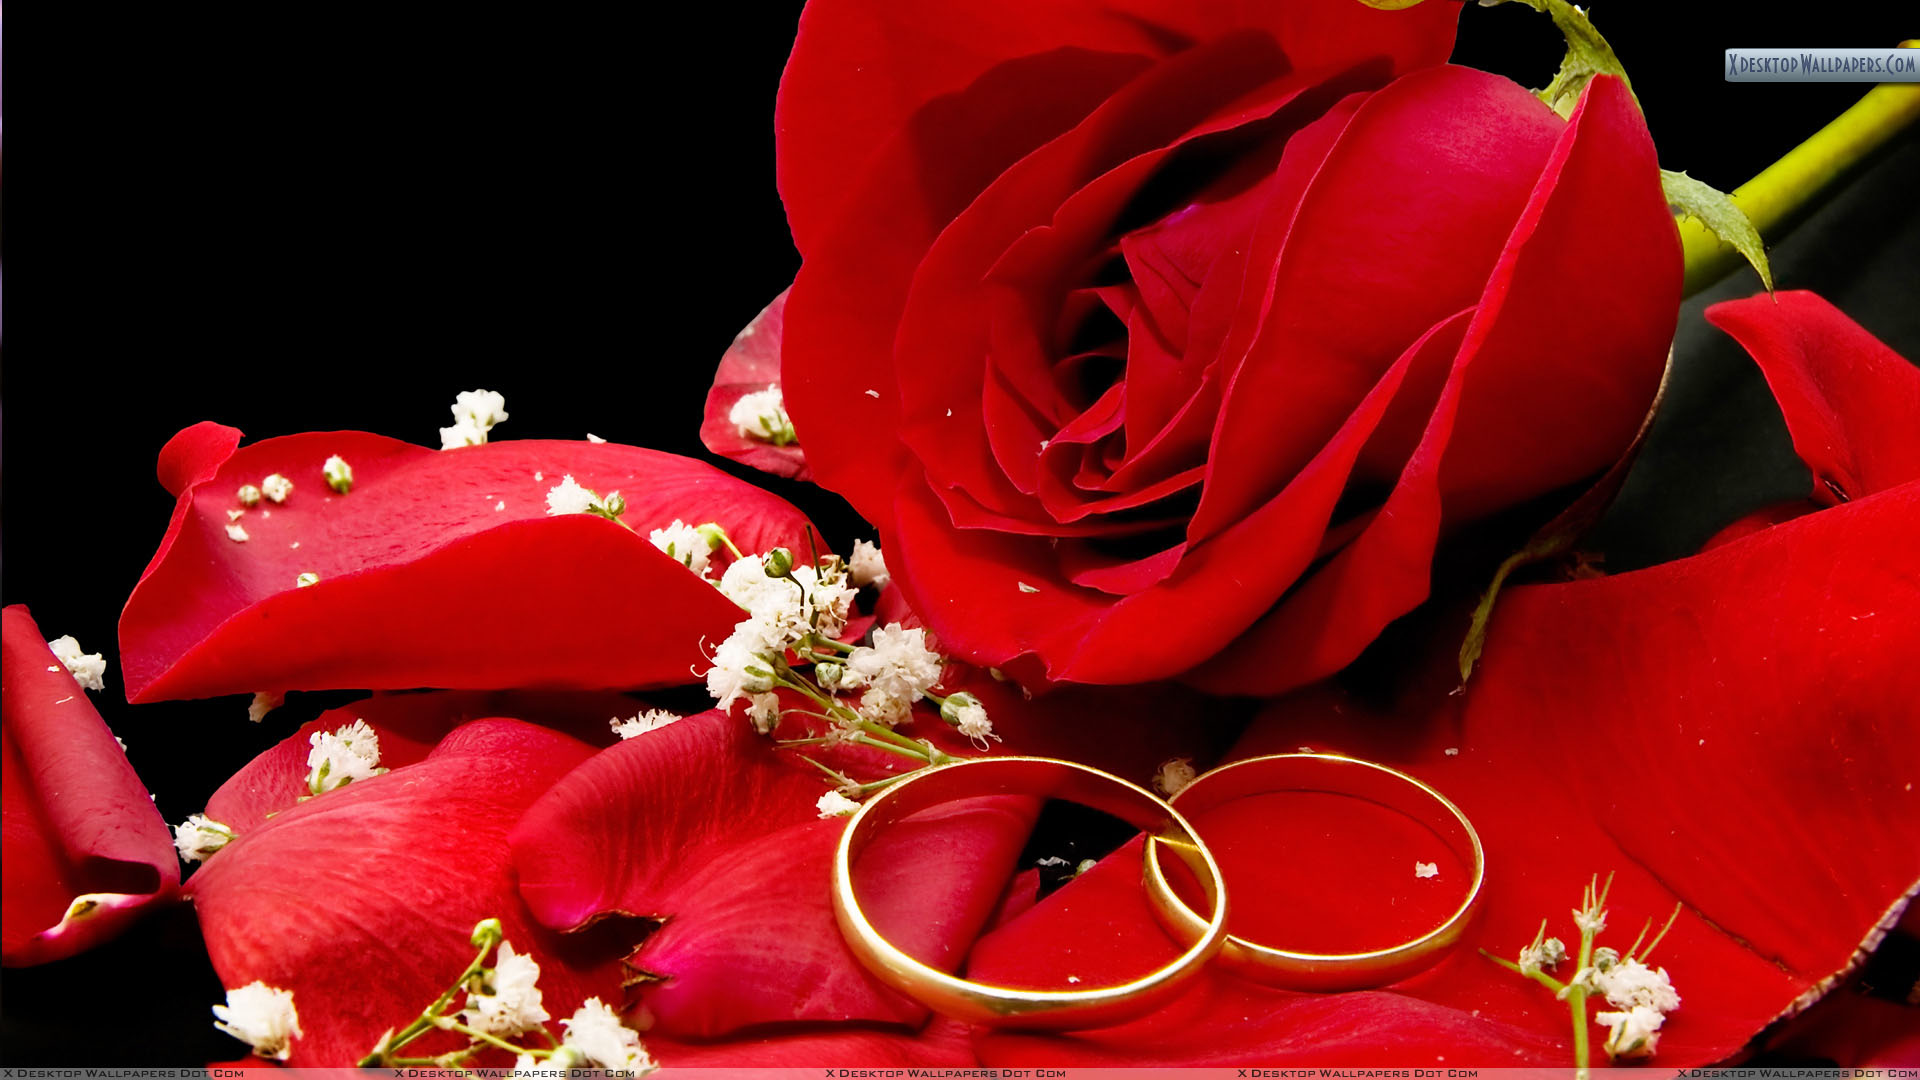 wedding rings with red rose and water rose wedding ring Two Wedding Golden Rings With Red Rose 05 Dec